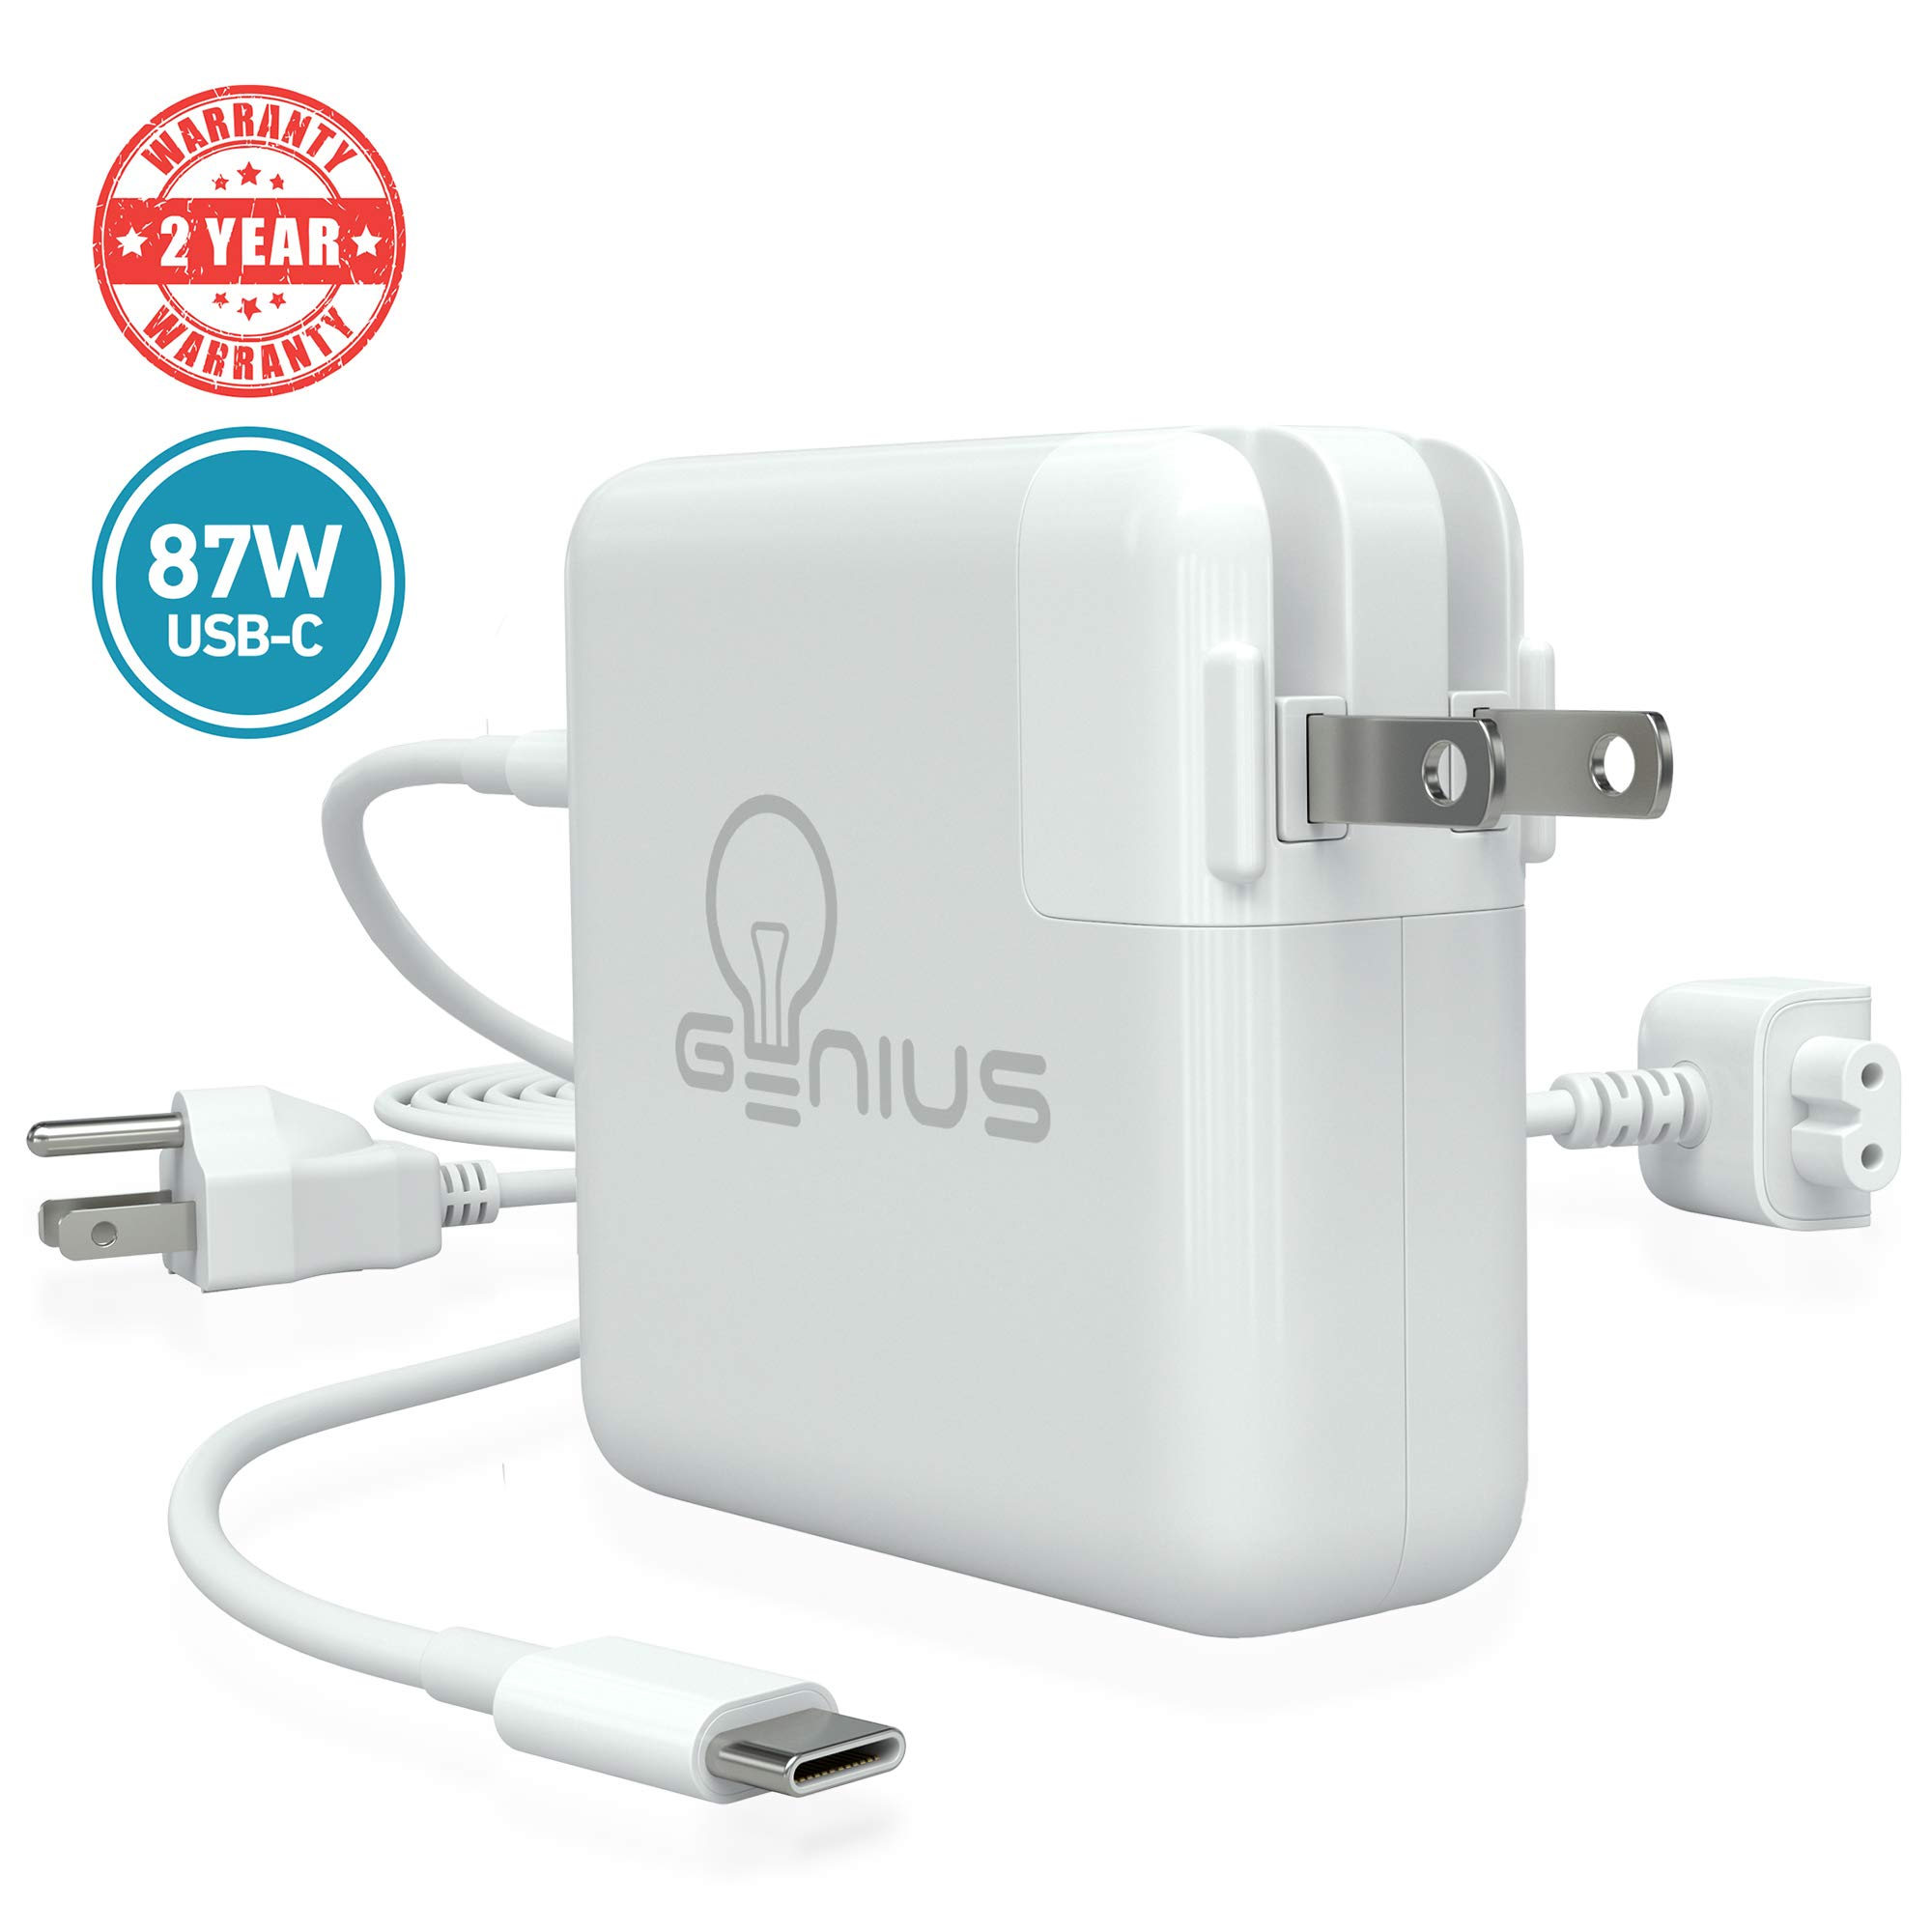 Genius Charger for Apple MacBook Pro 15'' 2016, 2017, 2018 | 87W USB C Power Adapter Laptop, 6.5f Cord + Free 6ft Cable Extension | No Fraying, No Overheating, Cool to The Touch, 2-Year Warranty by That Is Just Genius (Image #1)